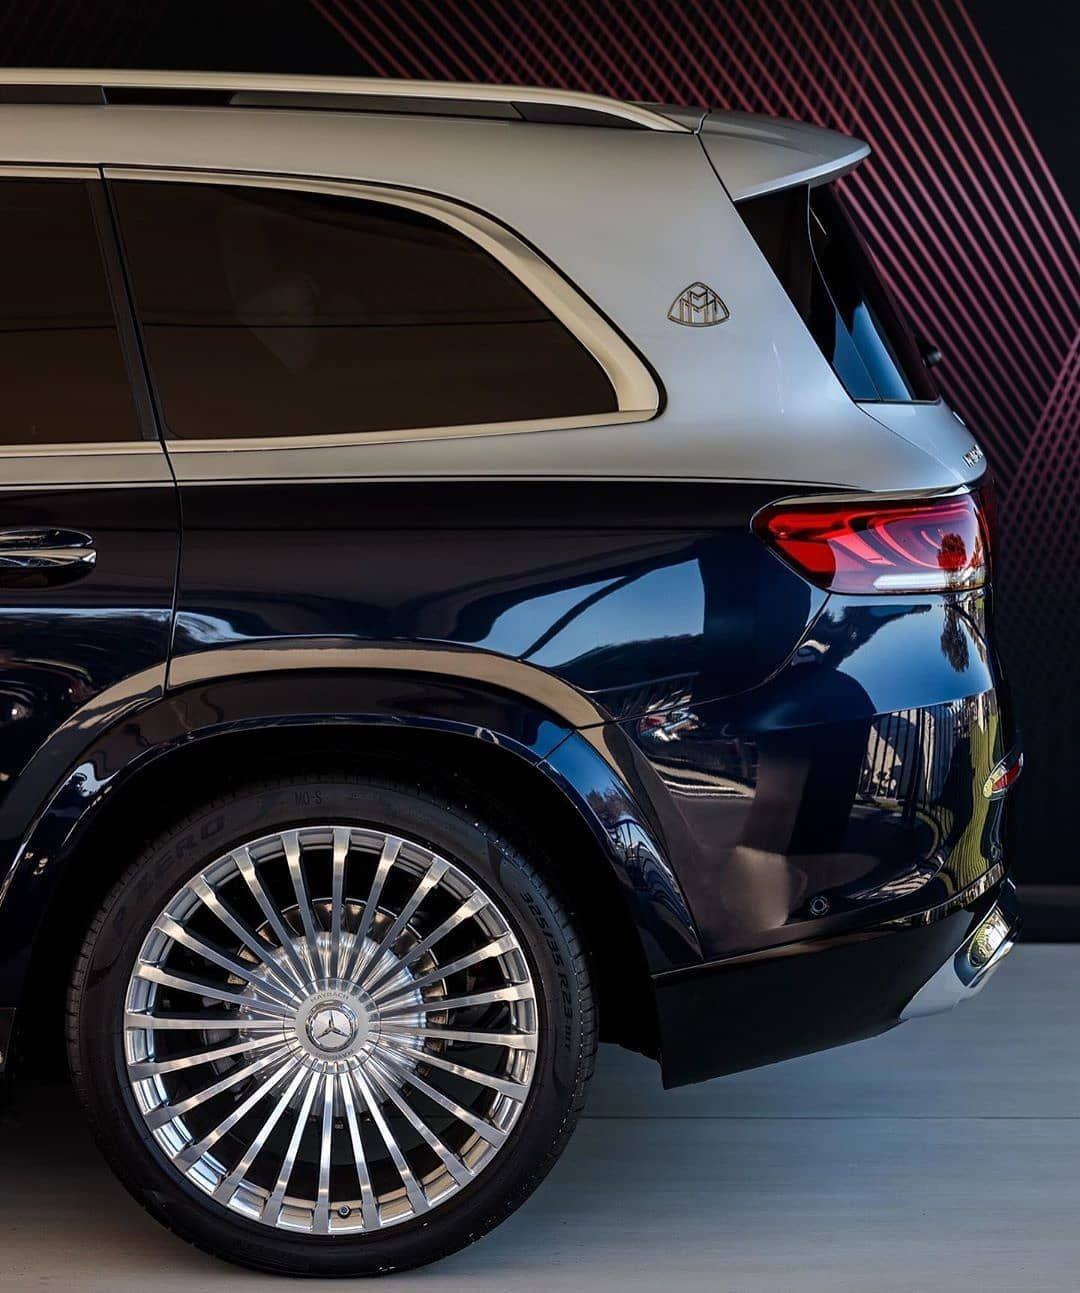 Mercedes Benz Maybach Fans On Instagram Super Luxury Suv 2020